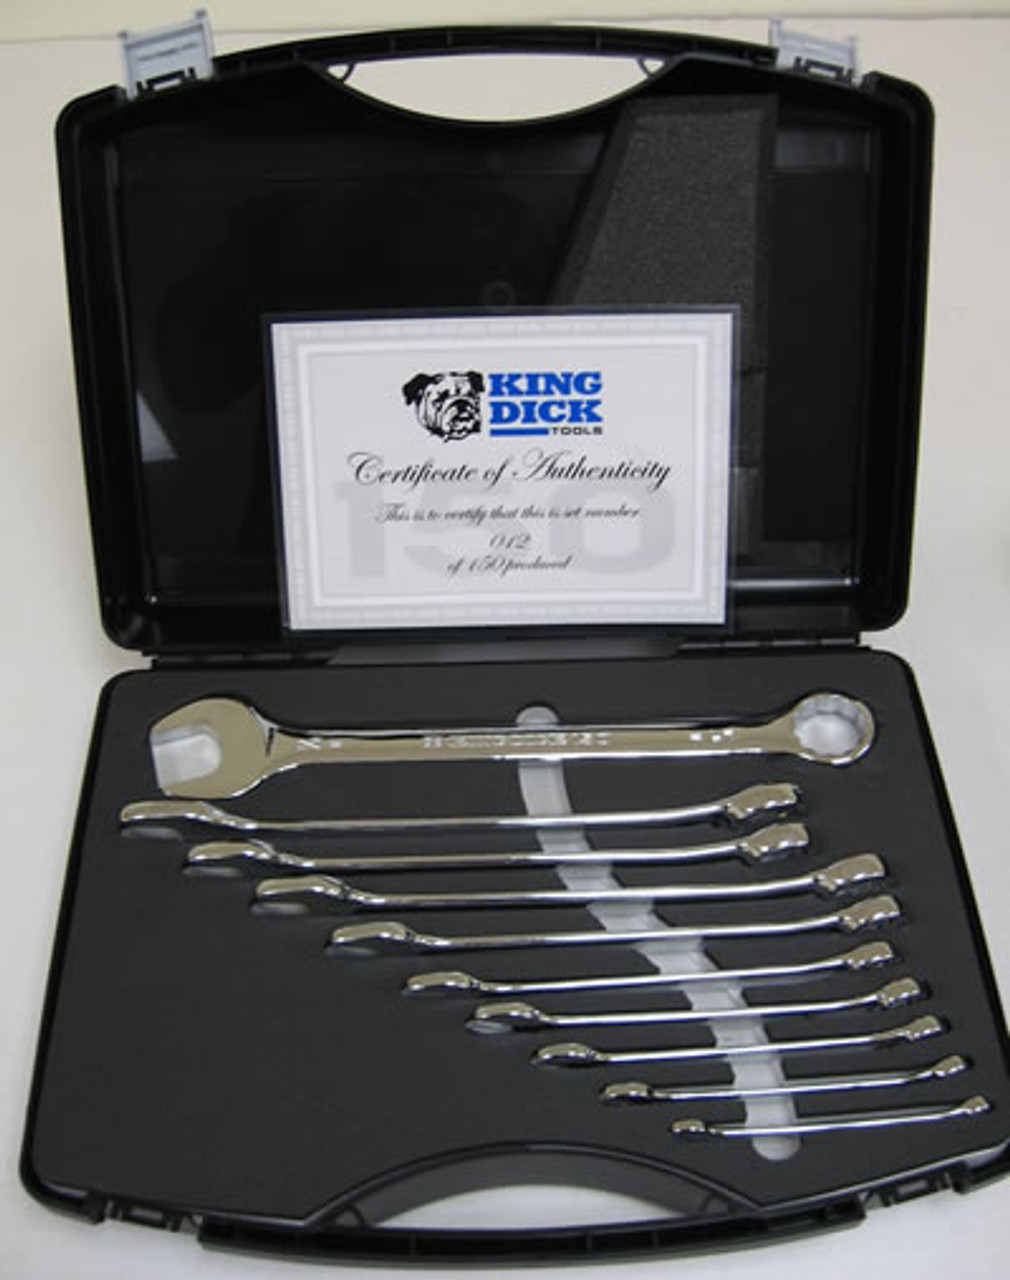 KING DICK 150TH ANNIVERSARY 10 PC COMBINATION WRENCH SET - (7783)